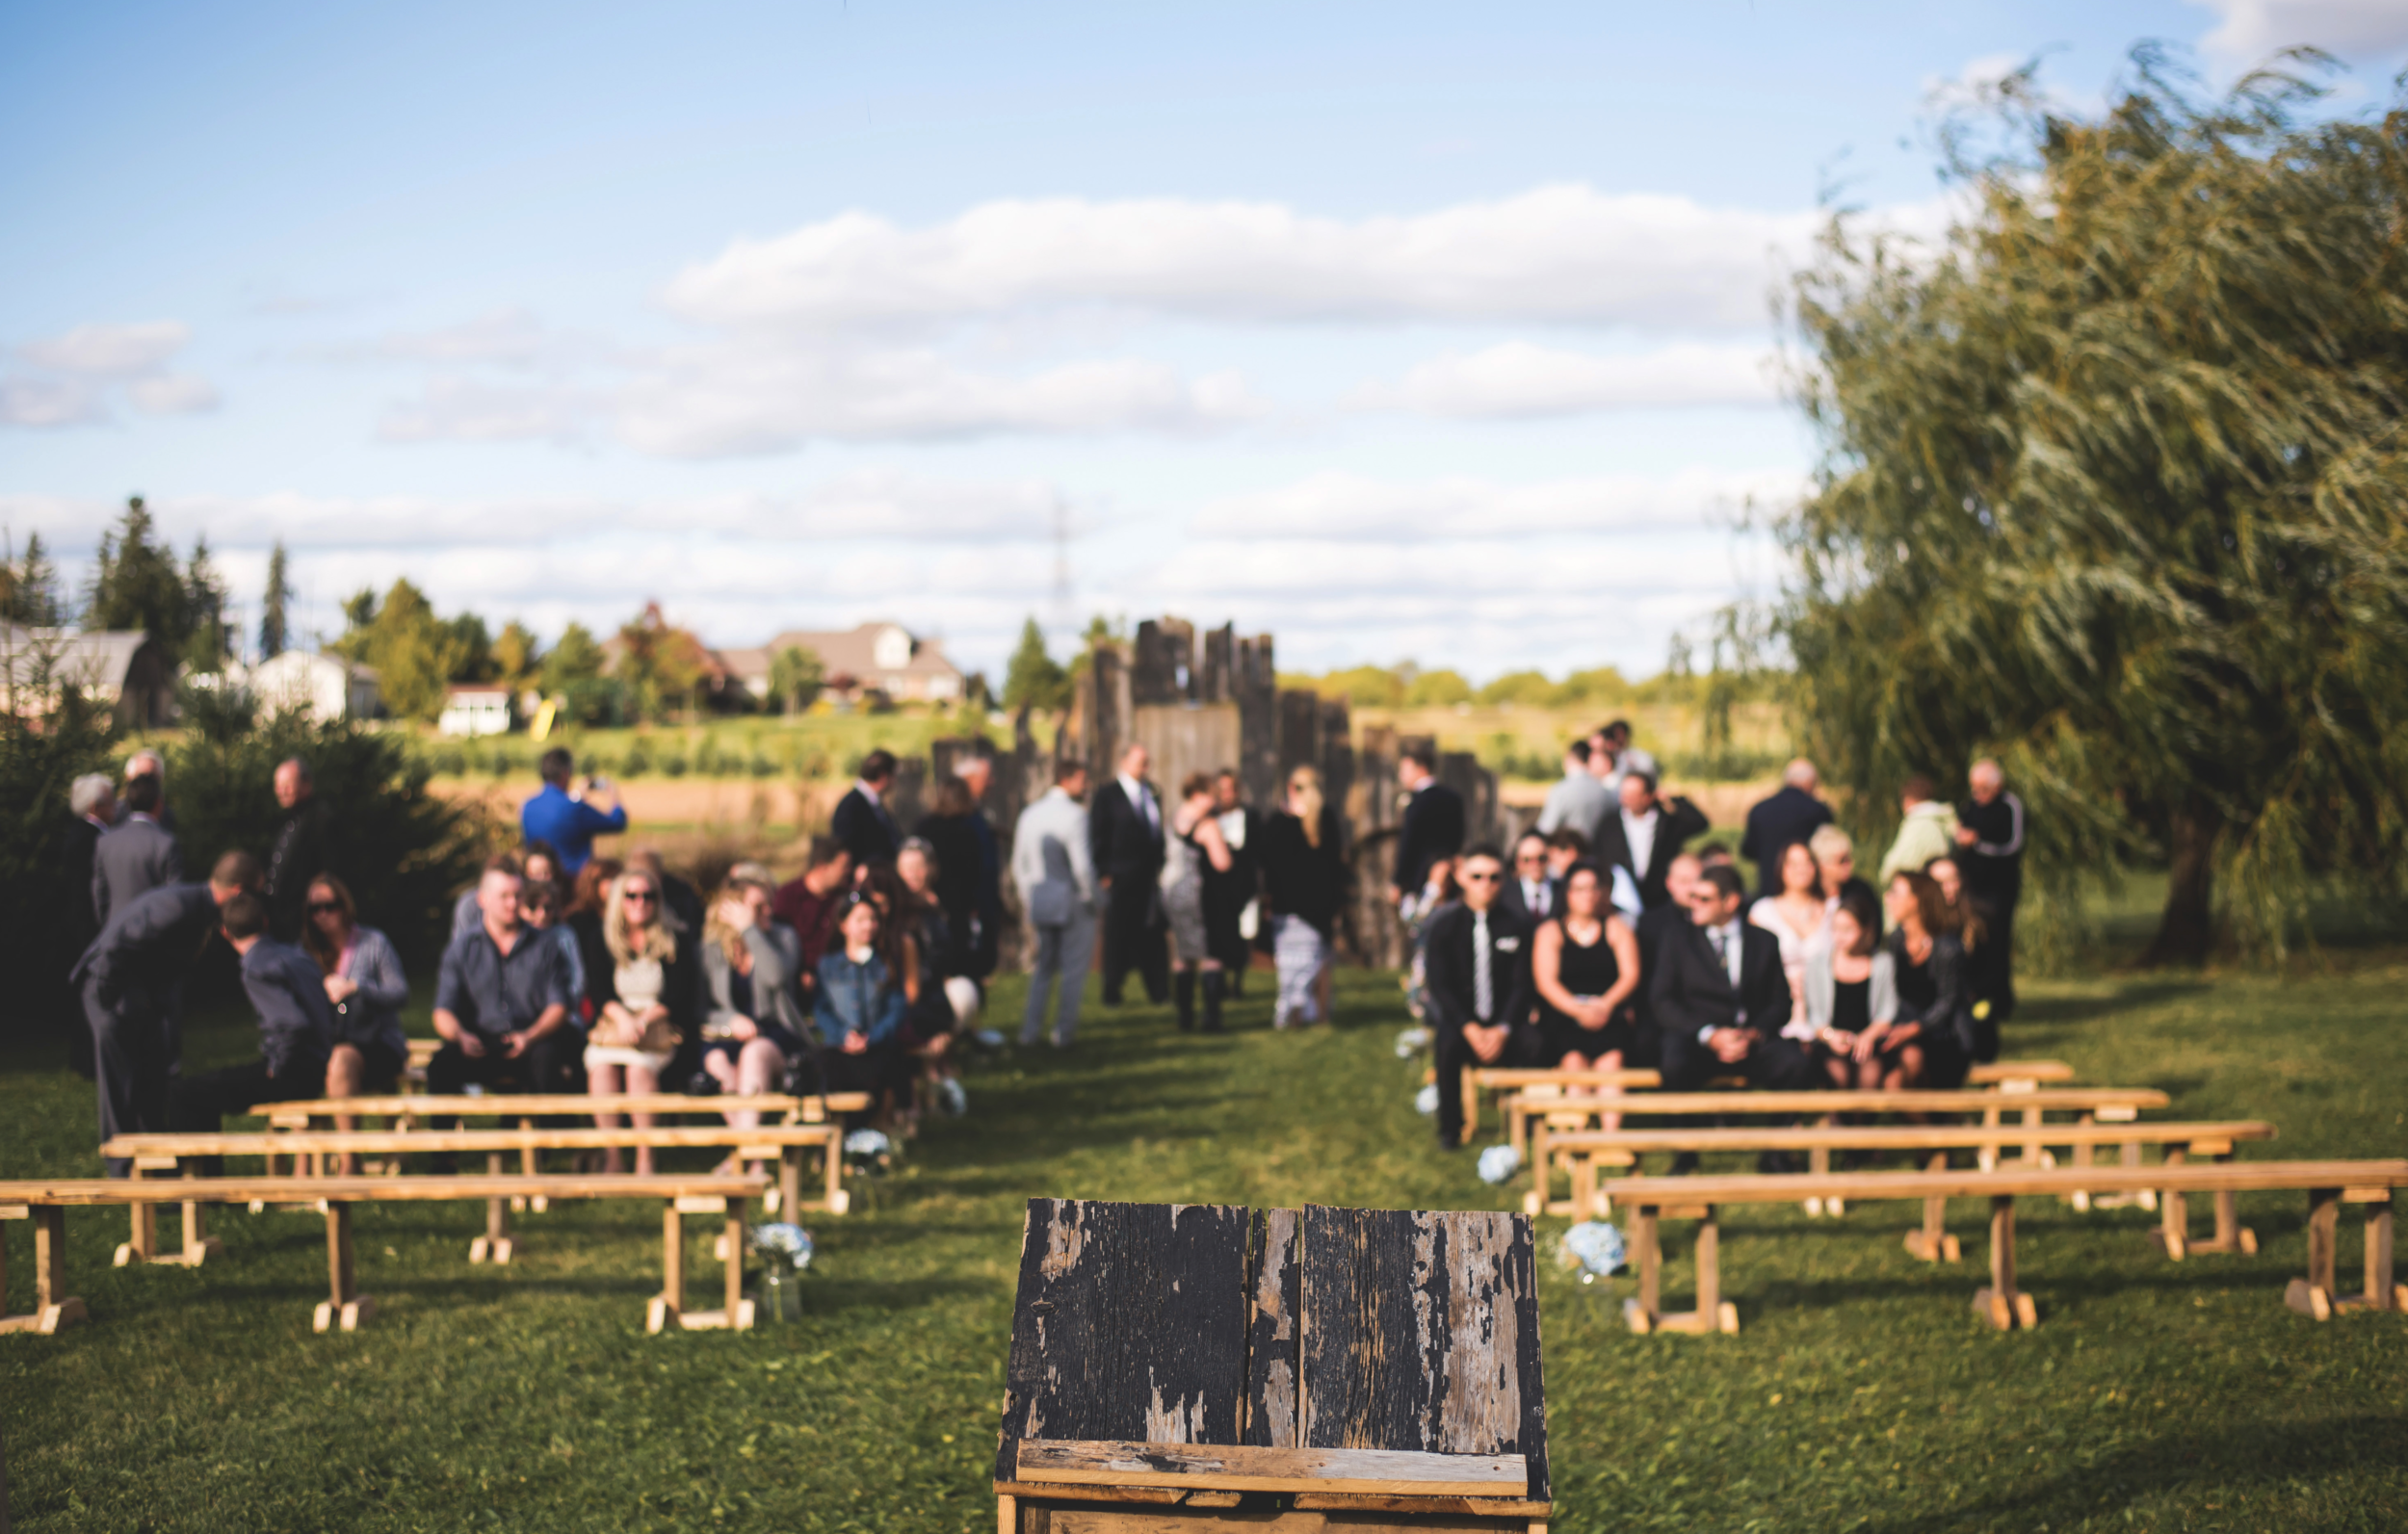 Wedding-Photos-Mount-Pleasant-Farm-Photographer-Wedding-Hamilton-GTA-Niagara-Oakville-Toronto-Moments-by-Lauren-Photography-Photo-Image-1.png